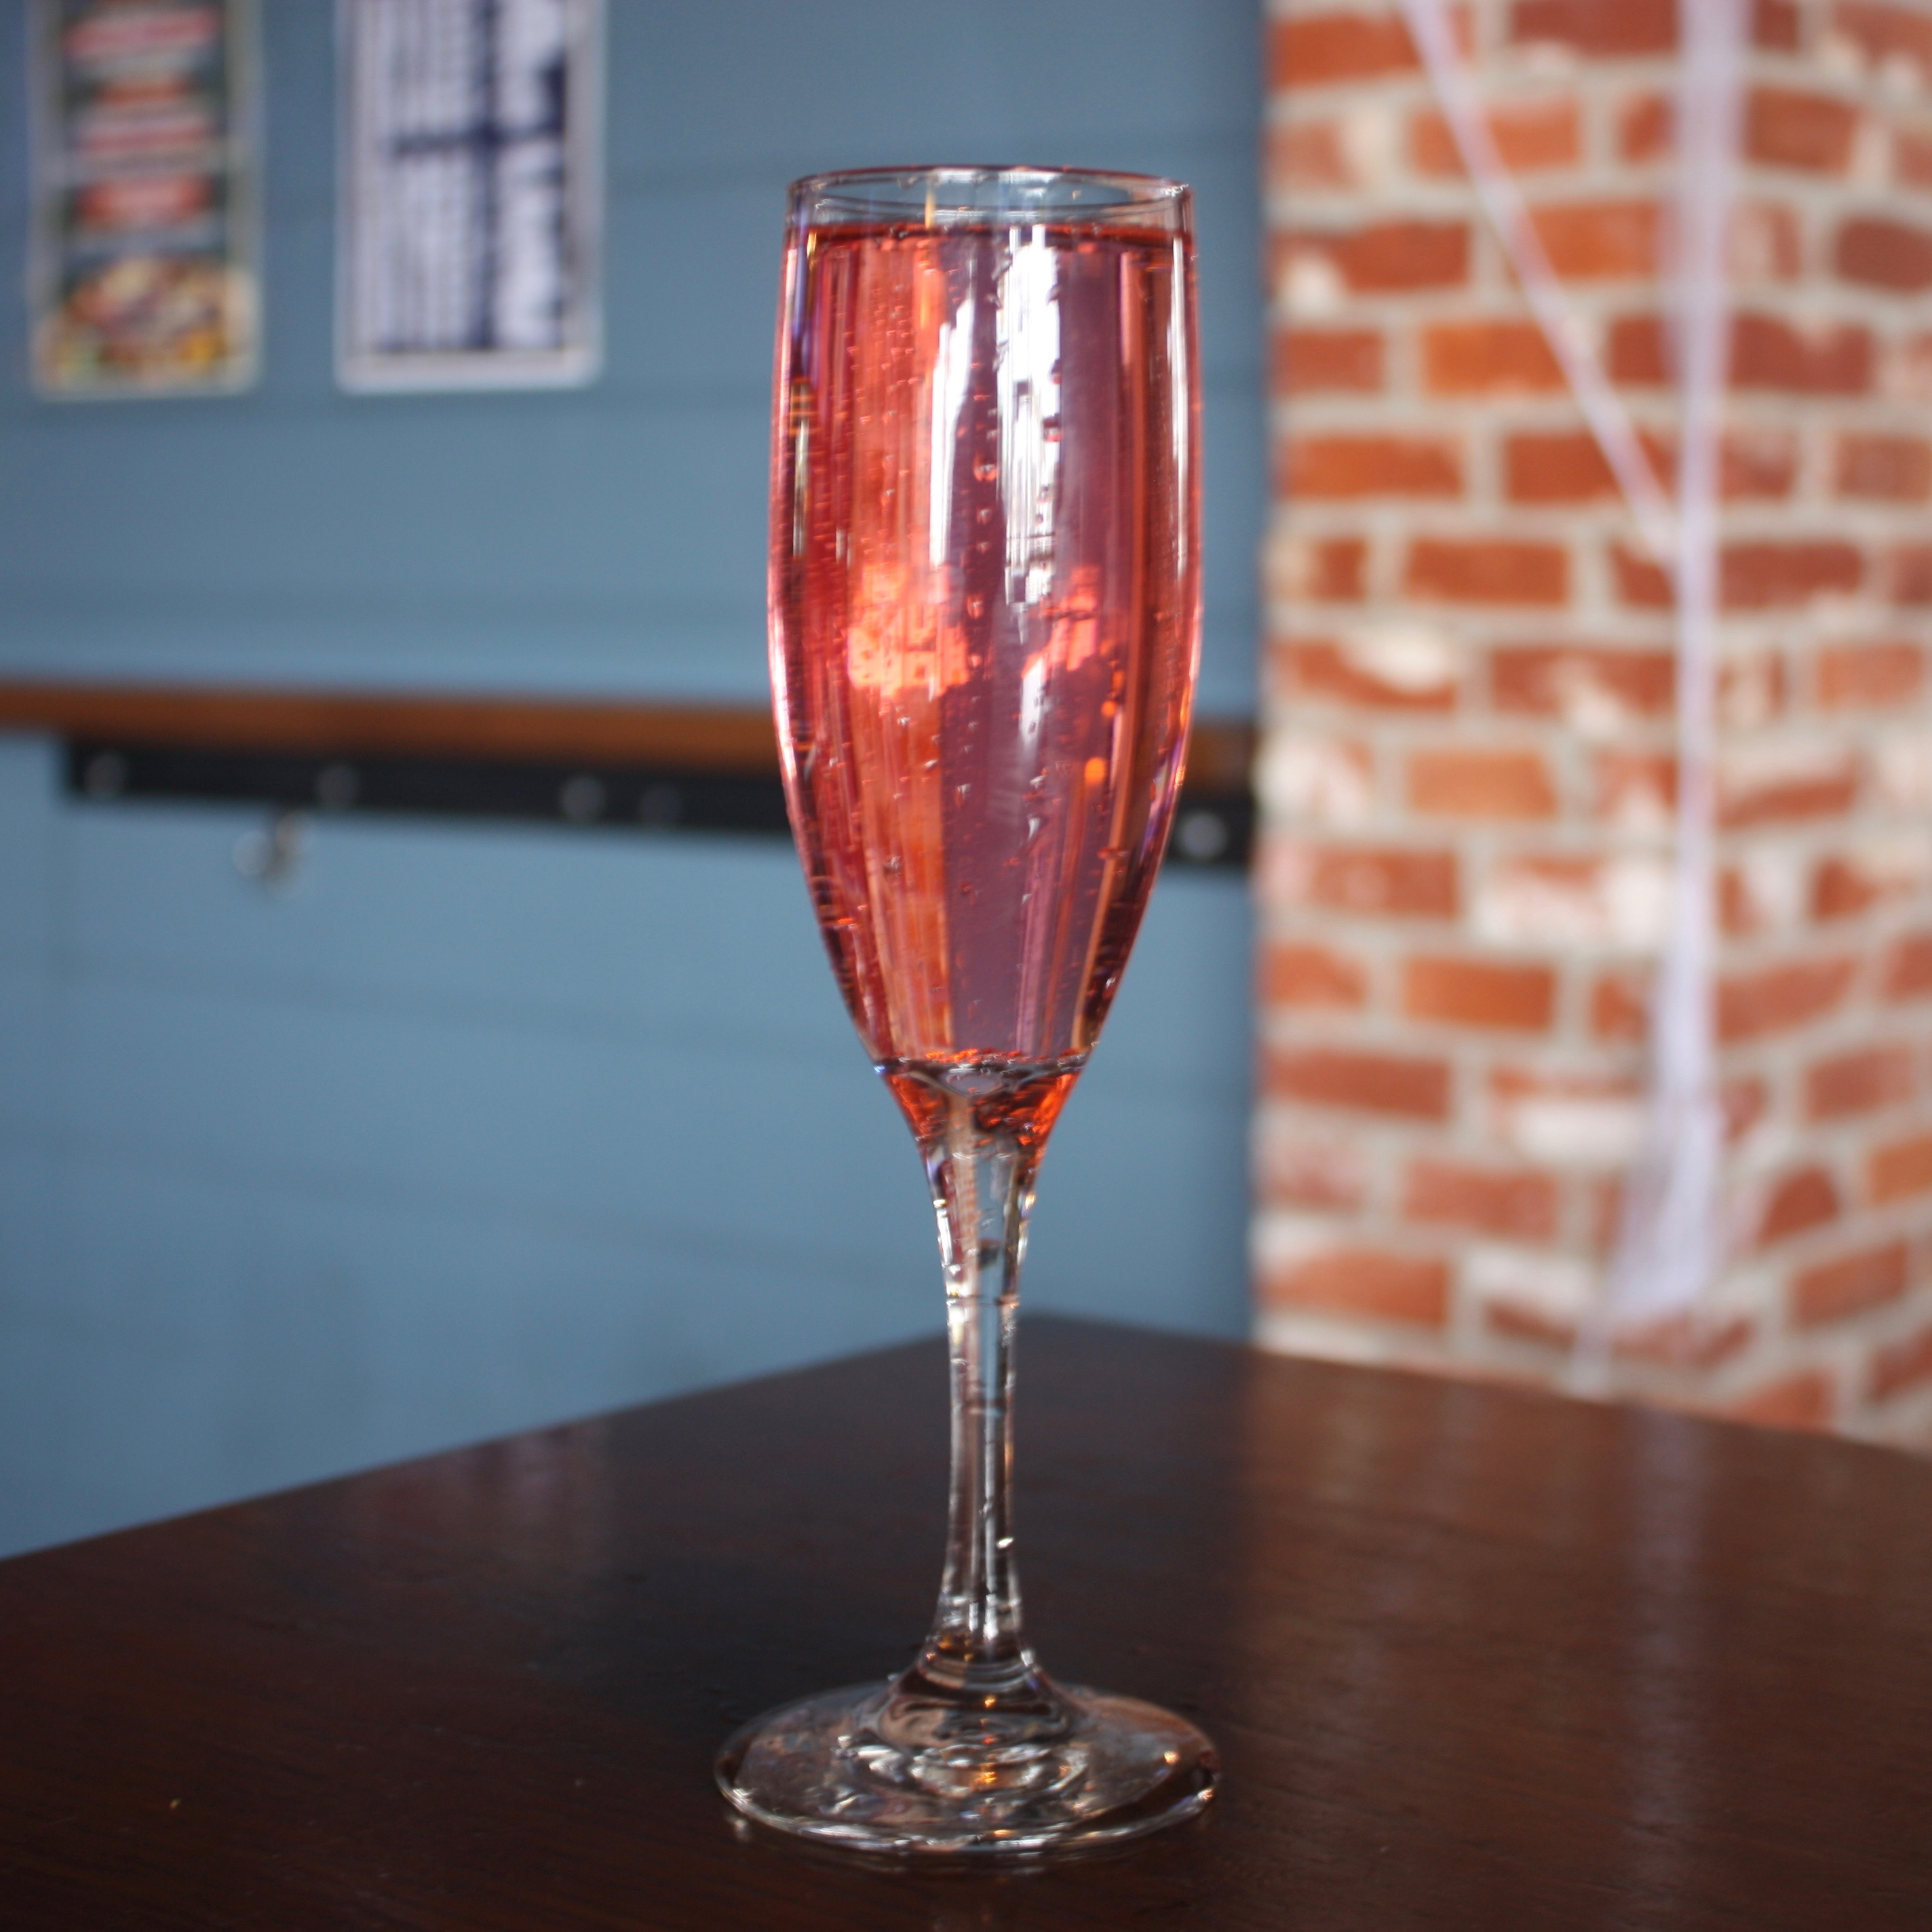 Try Stag Bar's Lychee-Mosa